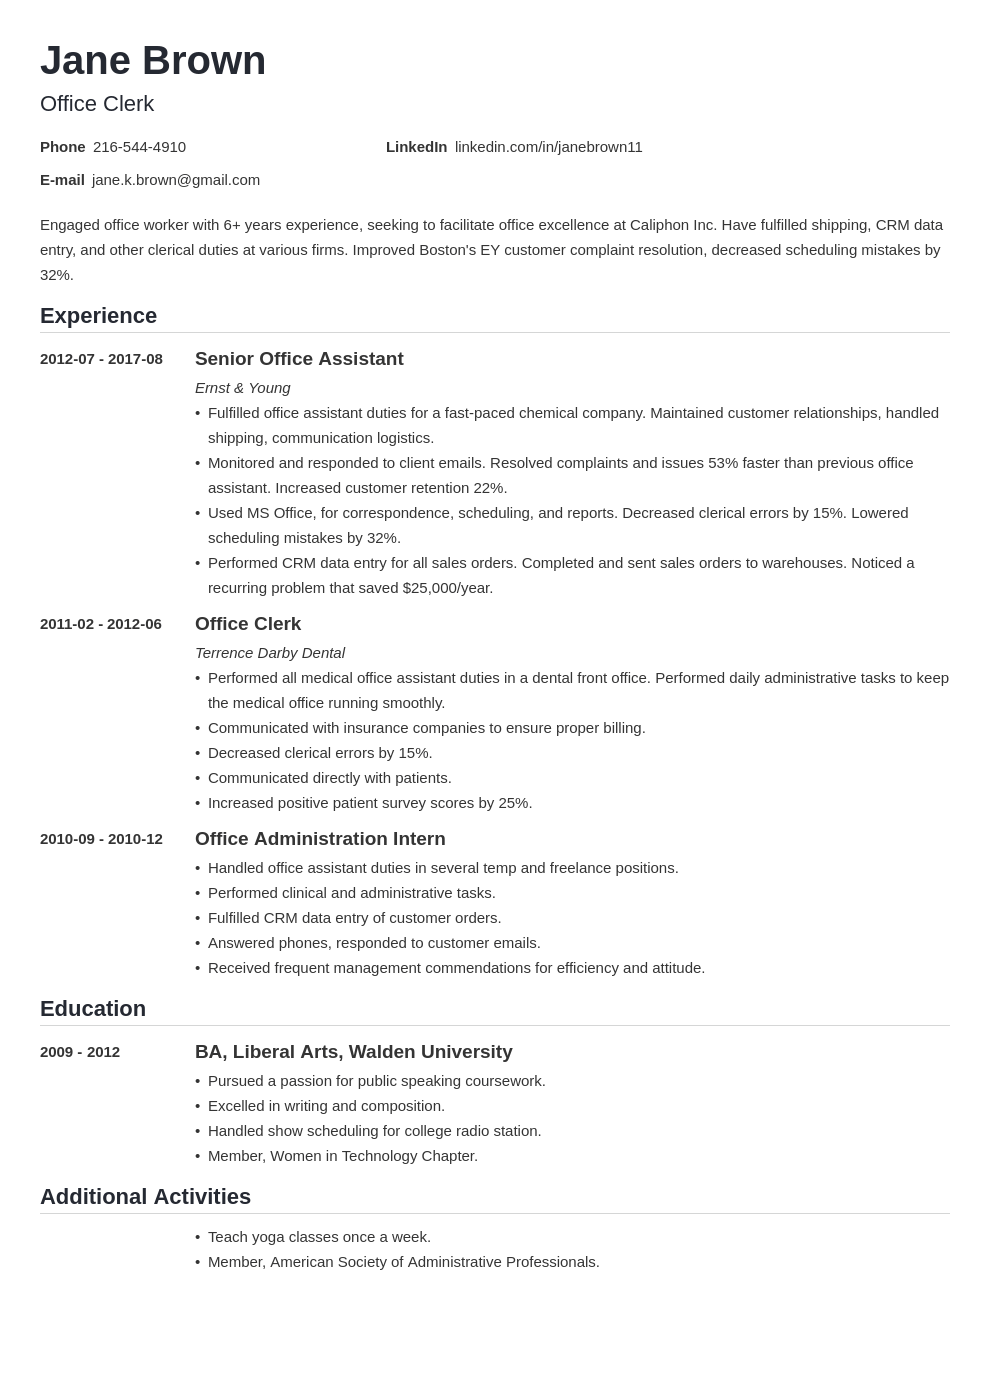 example resume for job clerk  2020 template for free